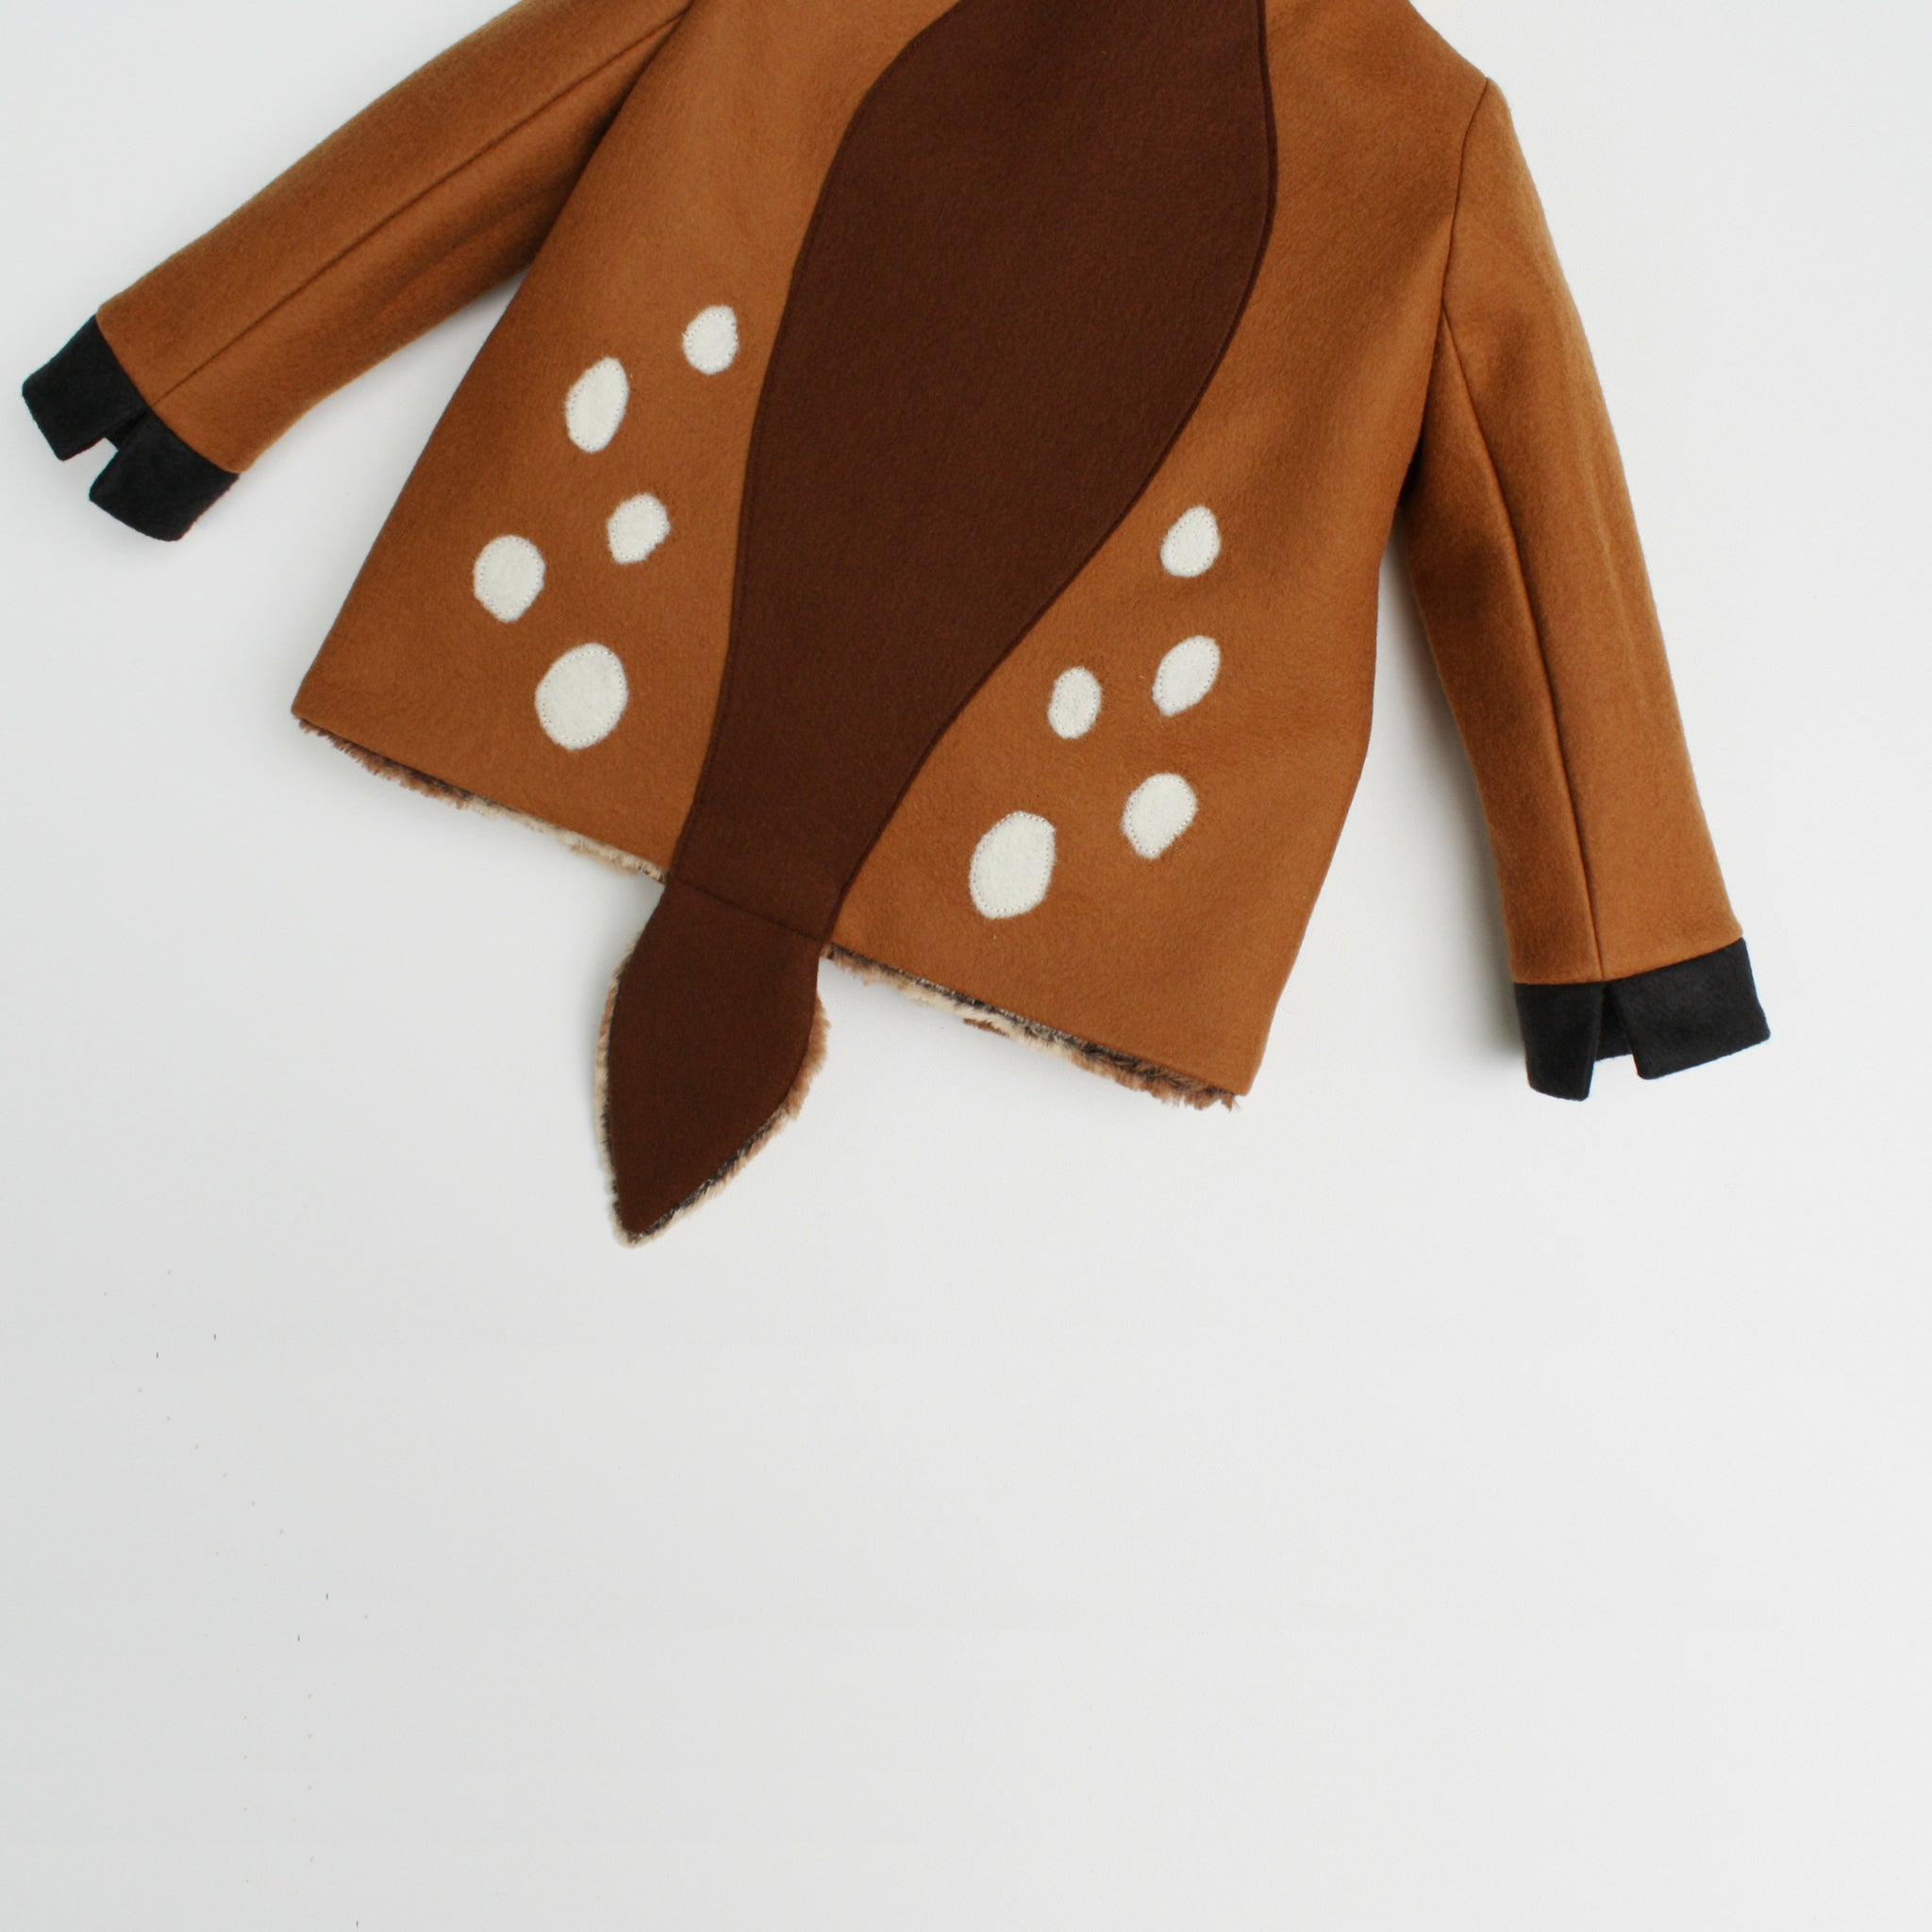 Back of fawn coat displaying white spots around a brown stripe in the middle of the back.